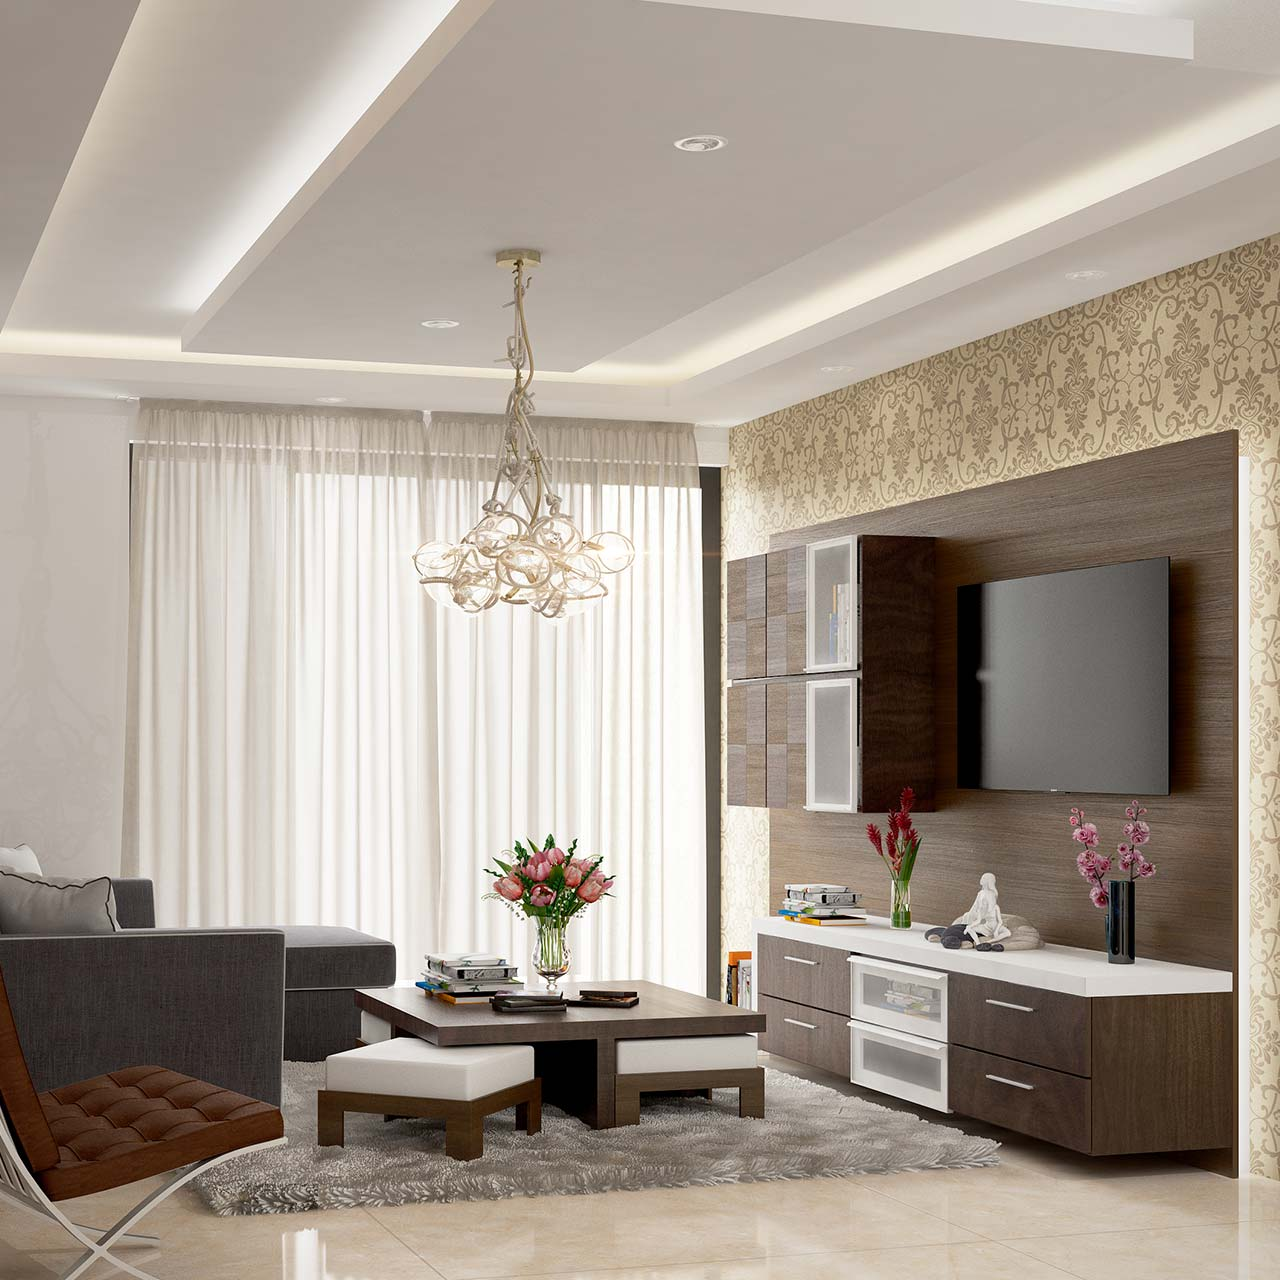 What's The Big Deal About Home Interior Design?